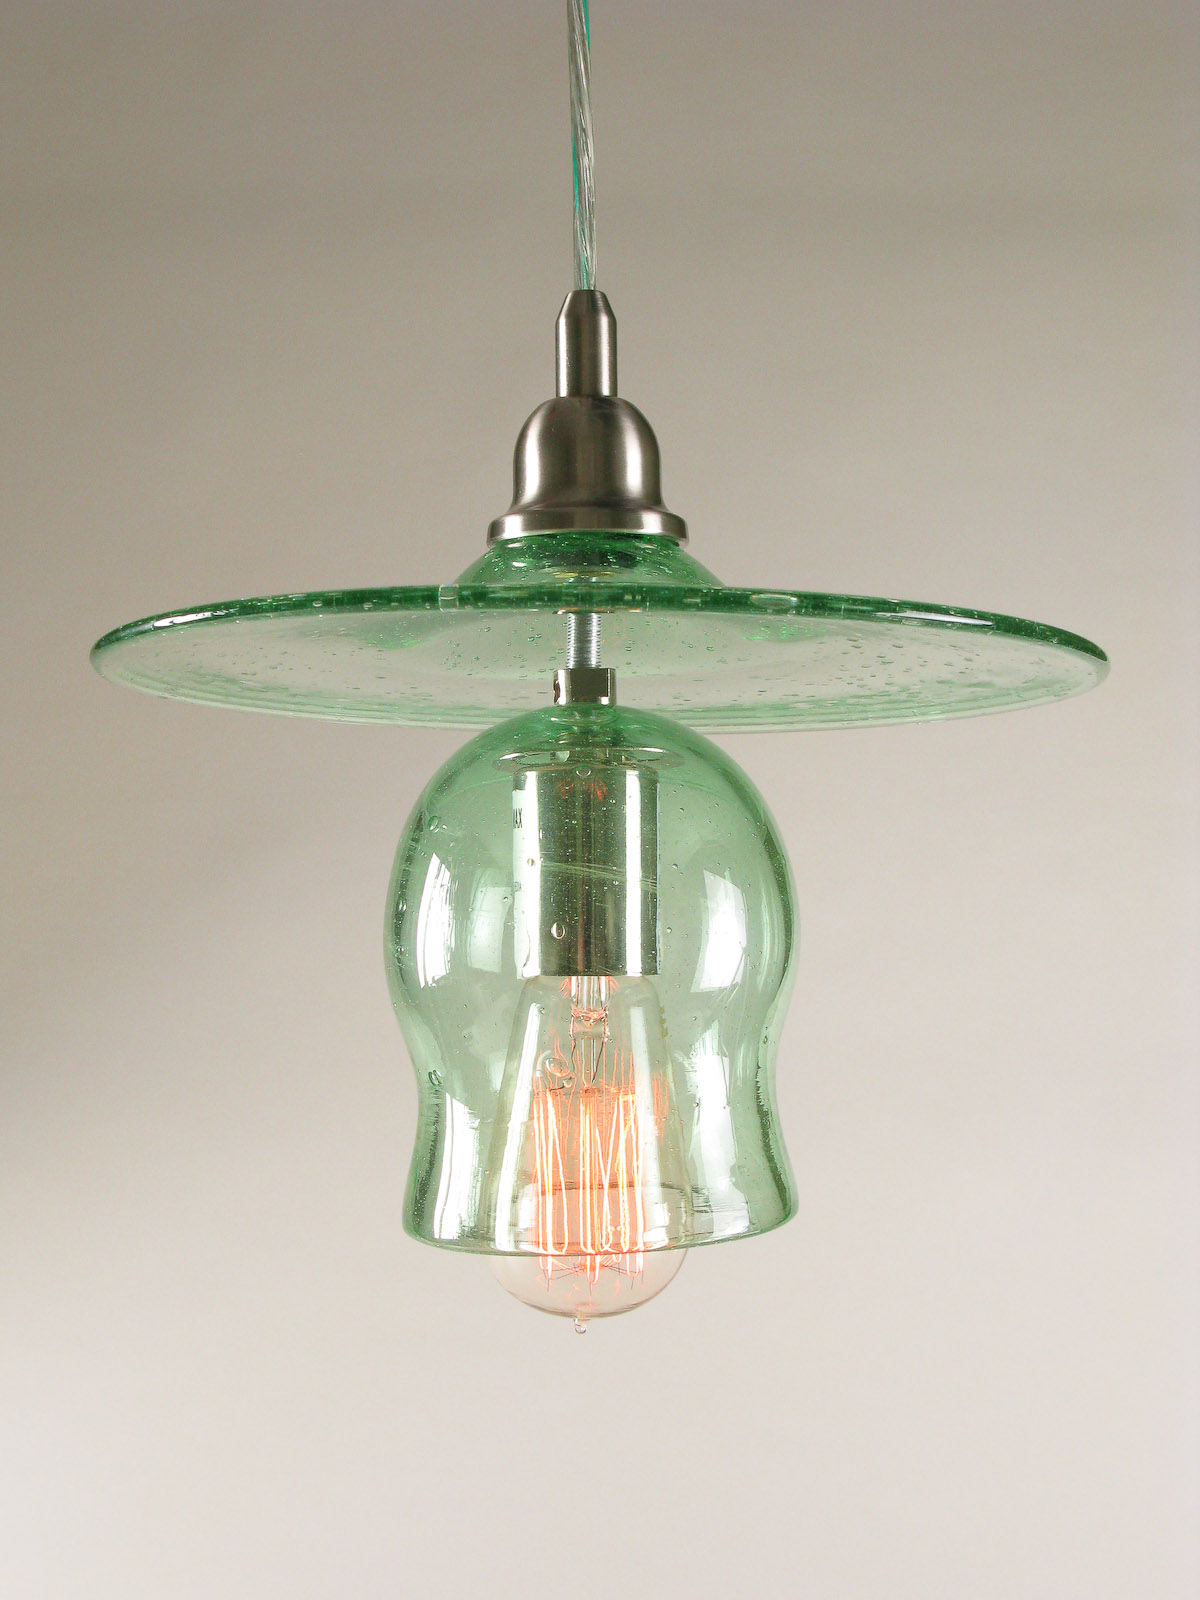 recycled glass lighting. recycled bottle glass hat u0026 bell pendant lamp lighting